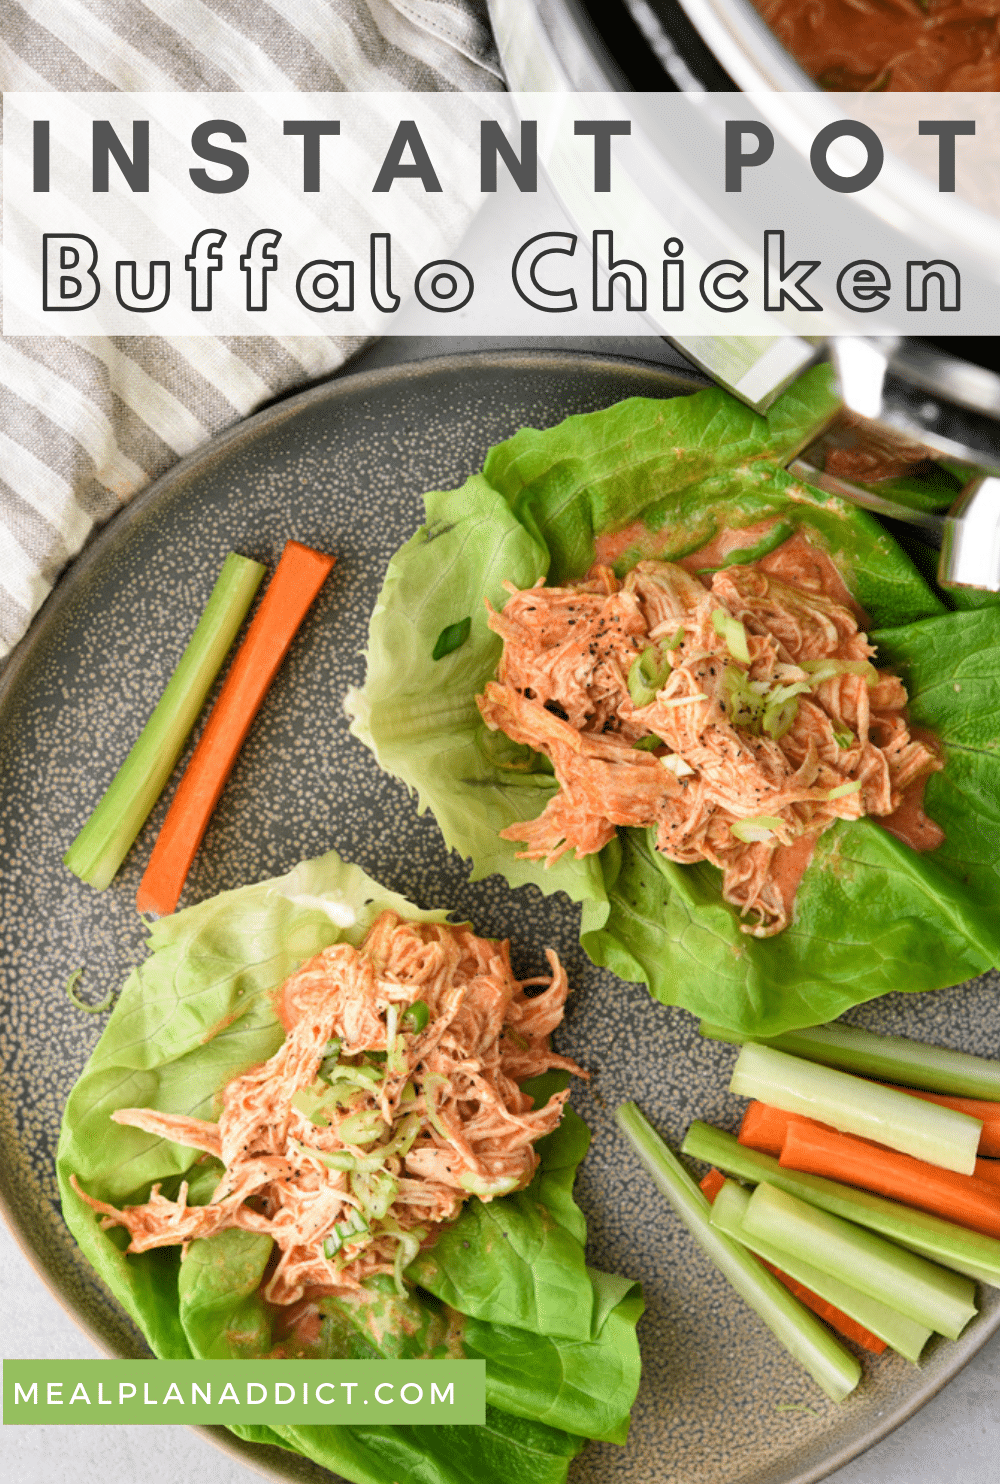 Easy Meal Prep Instant Pot Buffalo Chicken | Meal Plan Addict